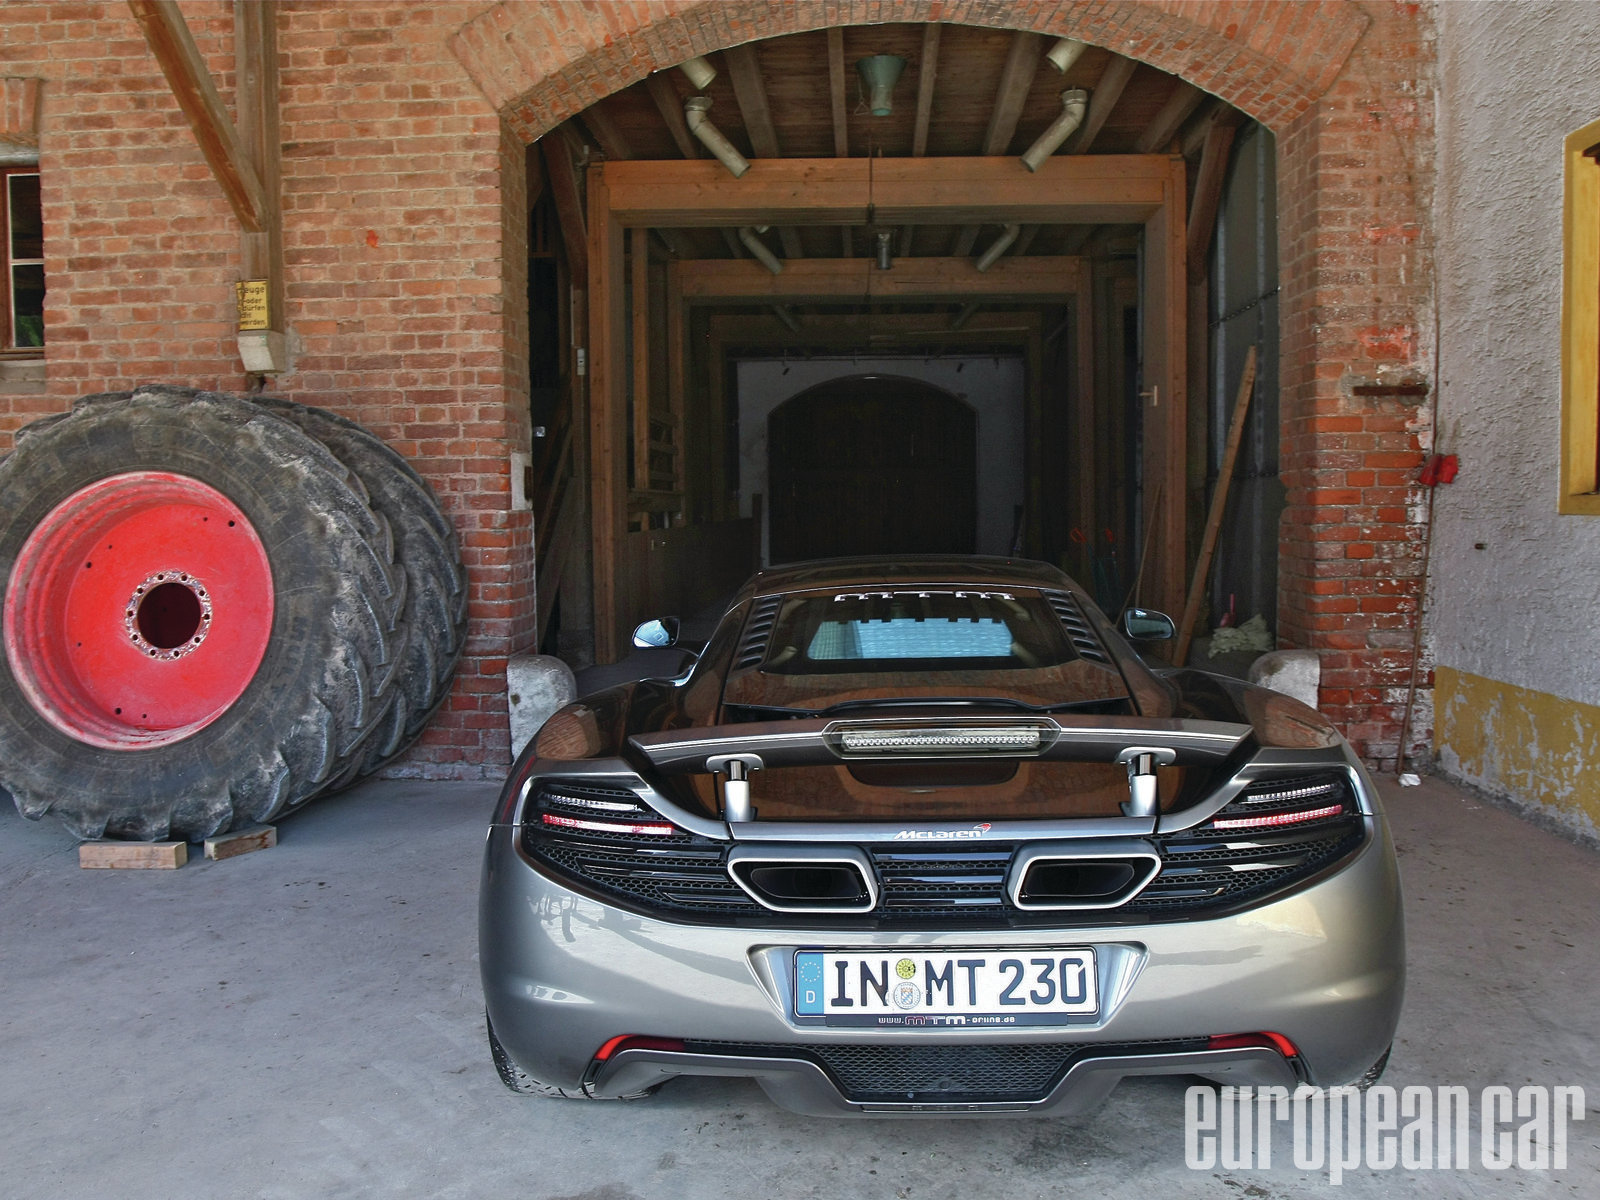 Epcp 1210 02+mtm 2012 mclaren mp4 12c+rear view